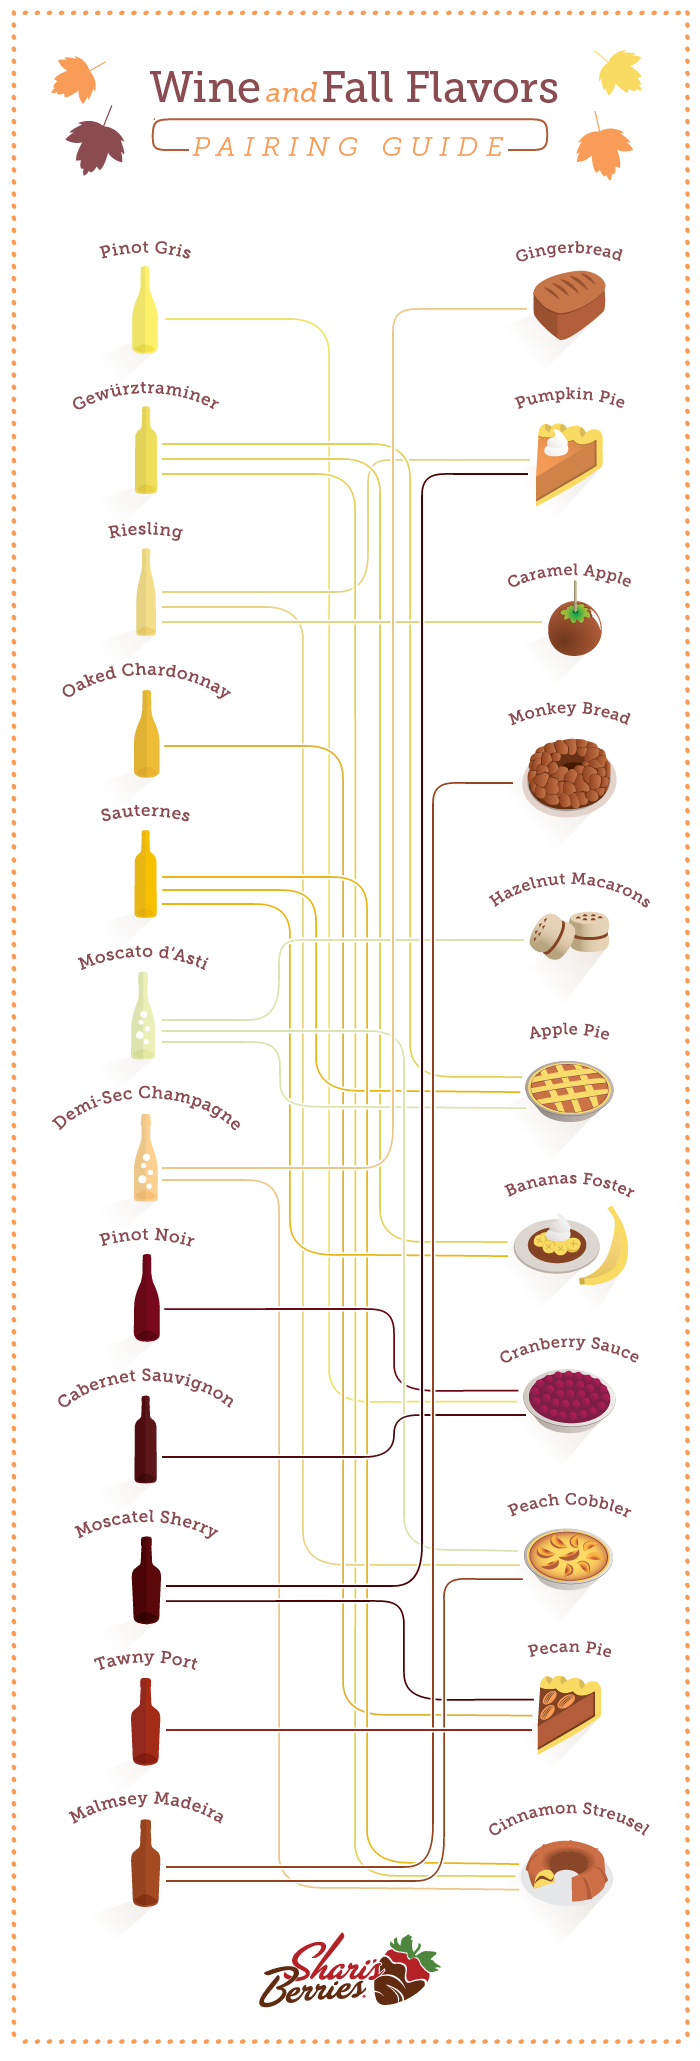 Wine and Fall Flavors